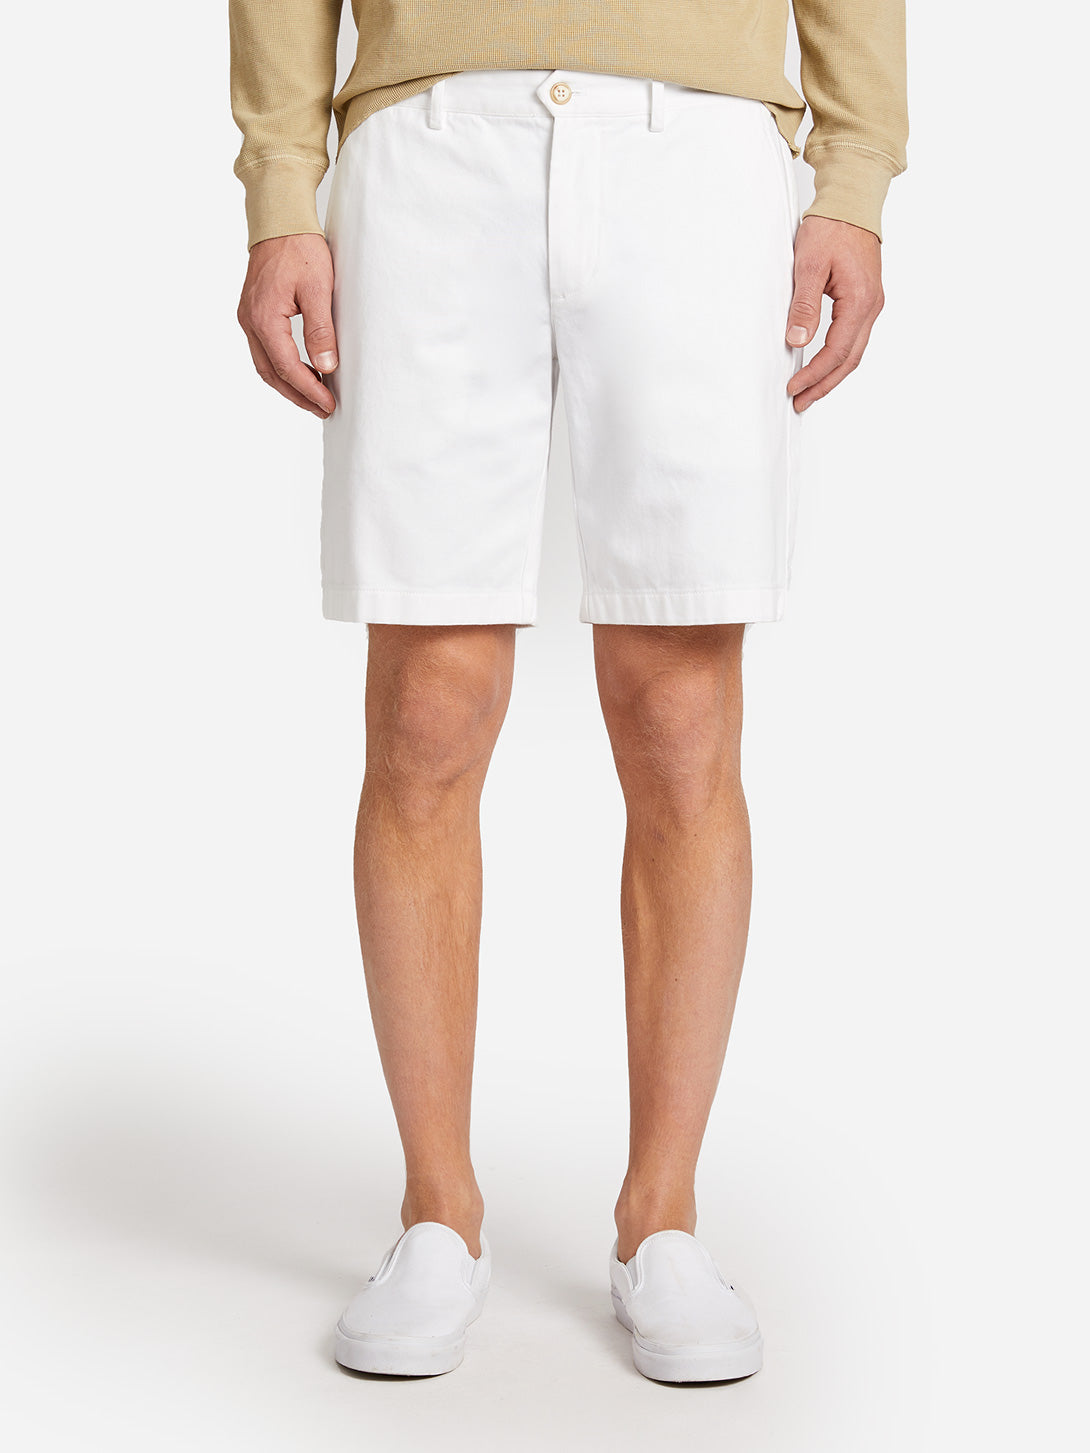 TWILL MODERN SHORT BRIGHT WHITE ONS CLOTHING